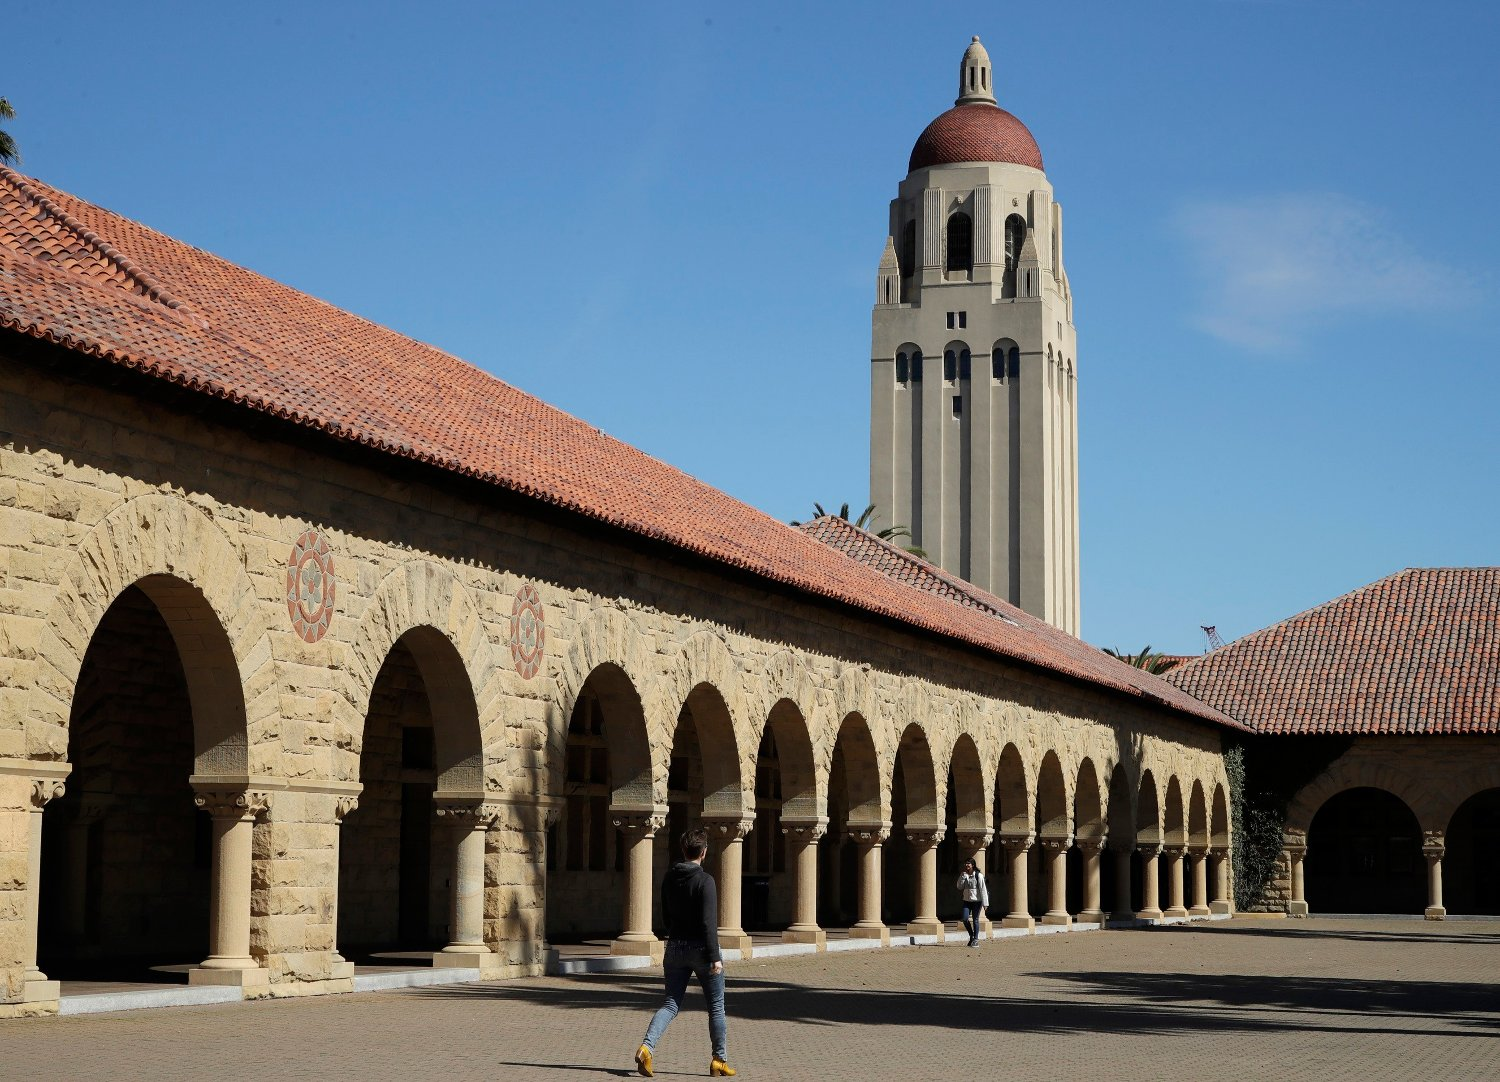 Hoover Tower ved det velrenommerte universitetet Stanford i California. Illustrasjonsfoto: Ben Margot / AP / NTB scanpix